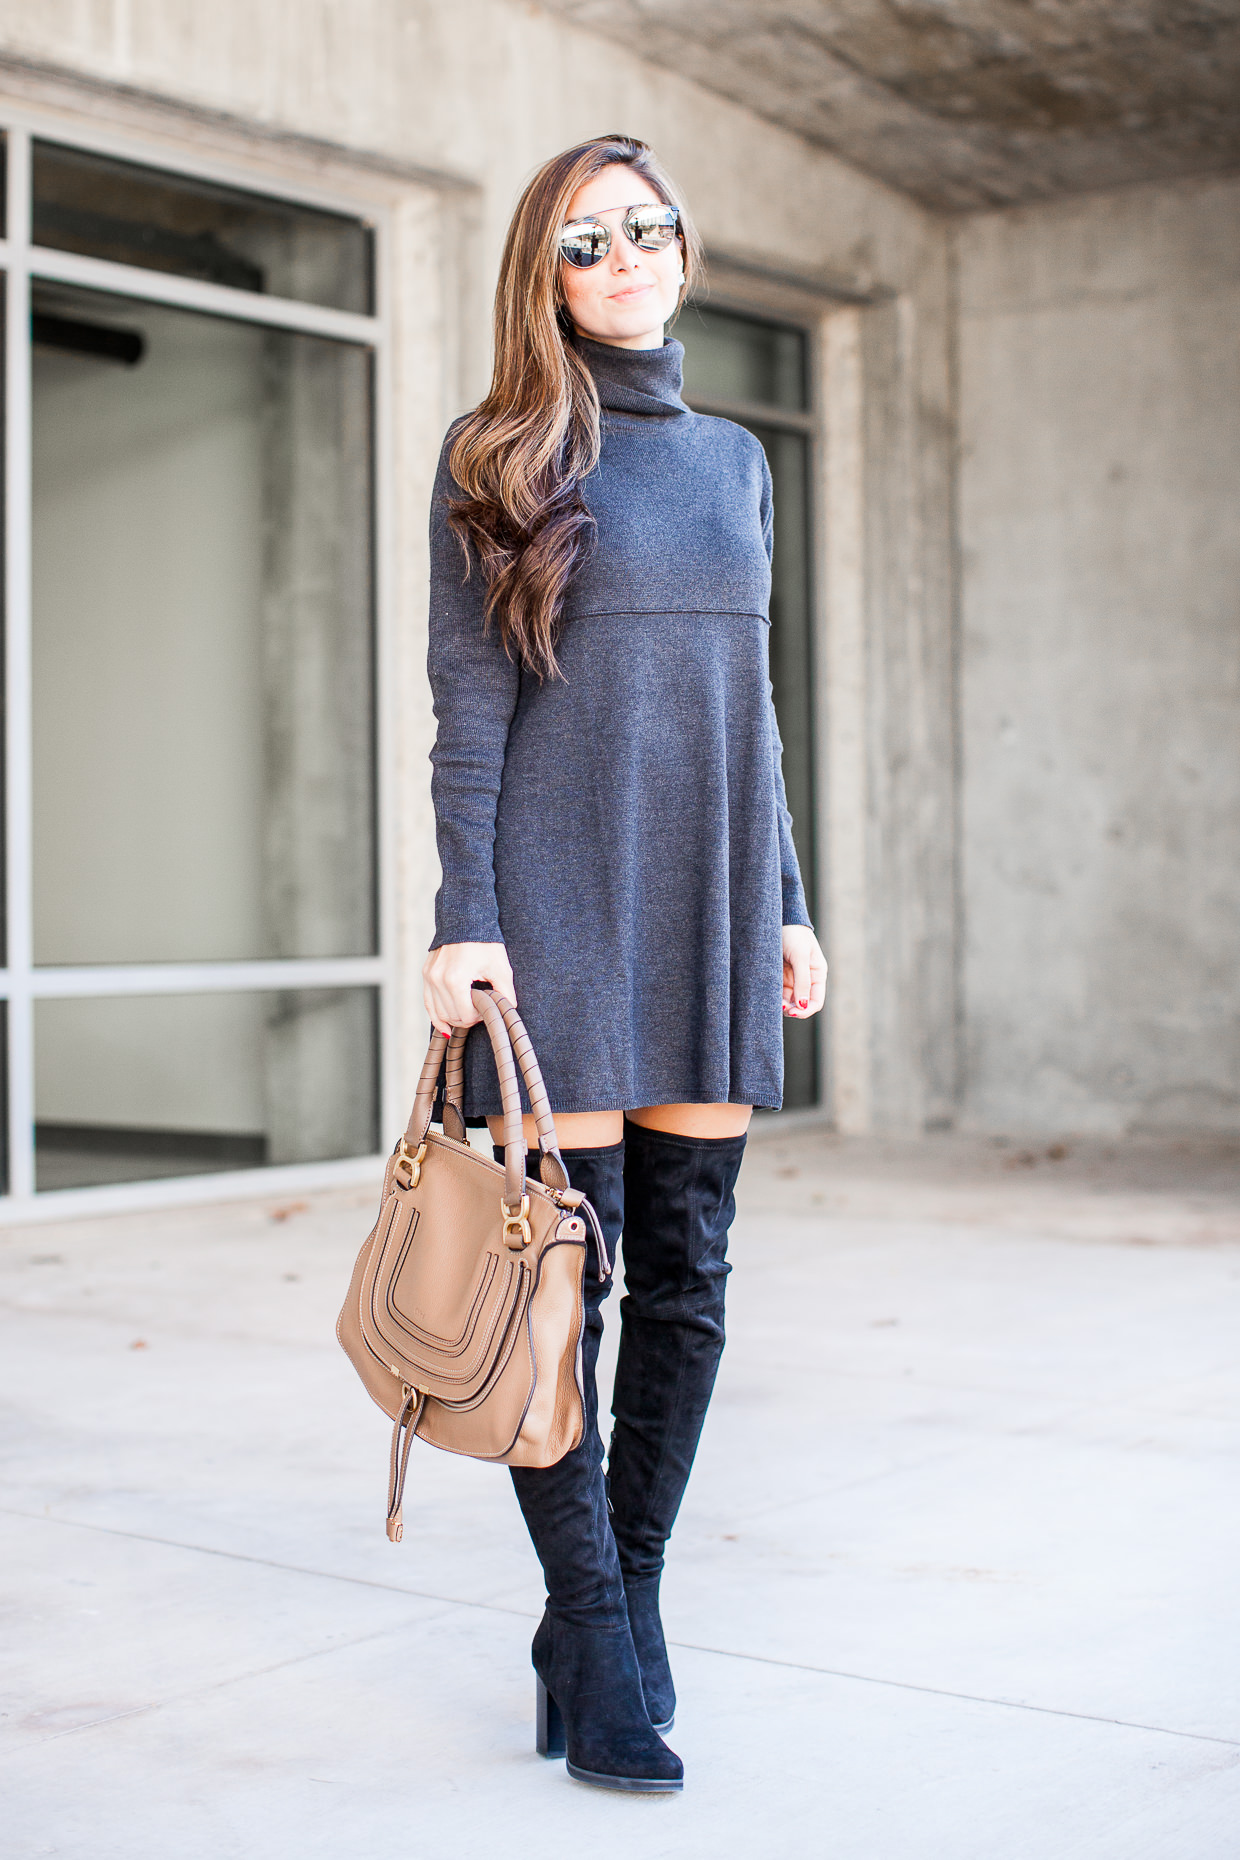 This is exactly how thigh high boots should be worn with dresses! Jessi rocks a simple and feminine sweater dress with a pair of leather boots and a beige handbag, creating an ultra cute overall style. Dress: Nordstrom, Bag: Chloe Marcie.